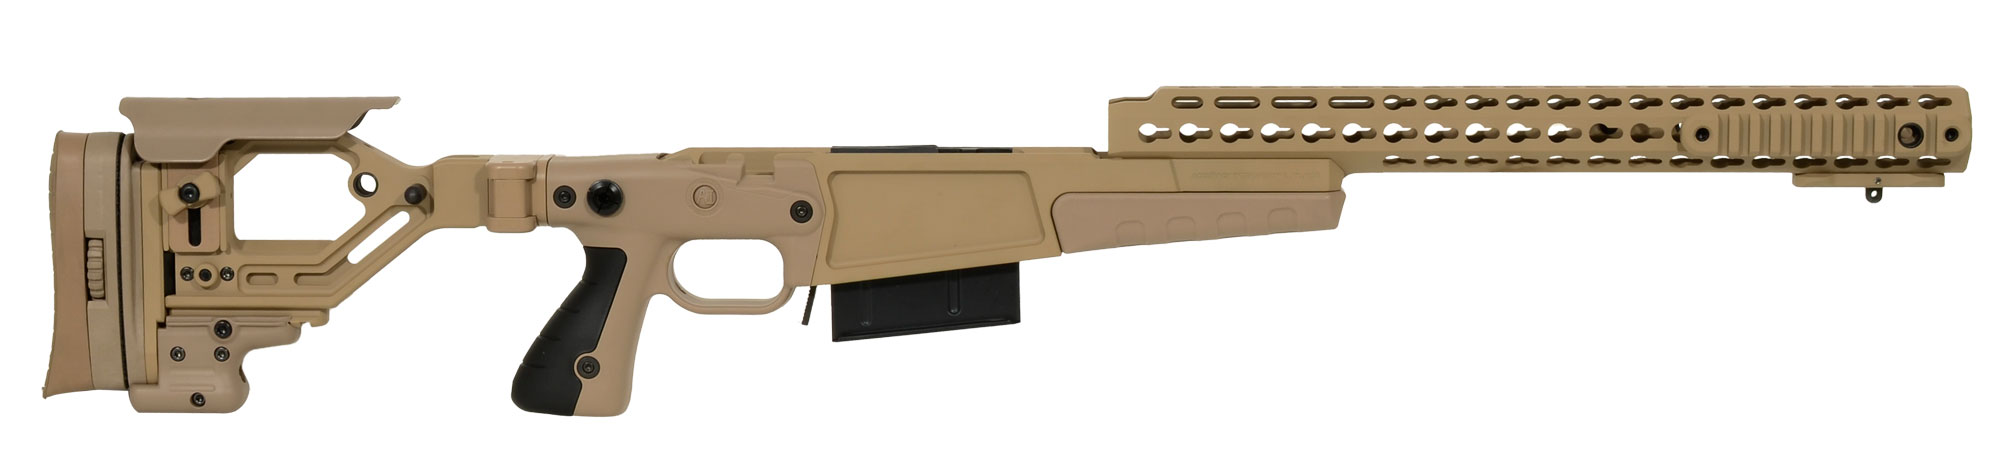 "Accuracy International AX AICS Chassis REM 700 LA .300 WIN 16"" forend tube PALE BROWN 26713PB 26713PB"